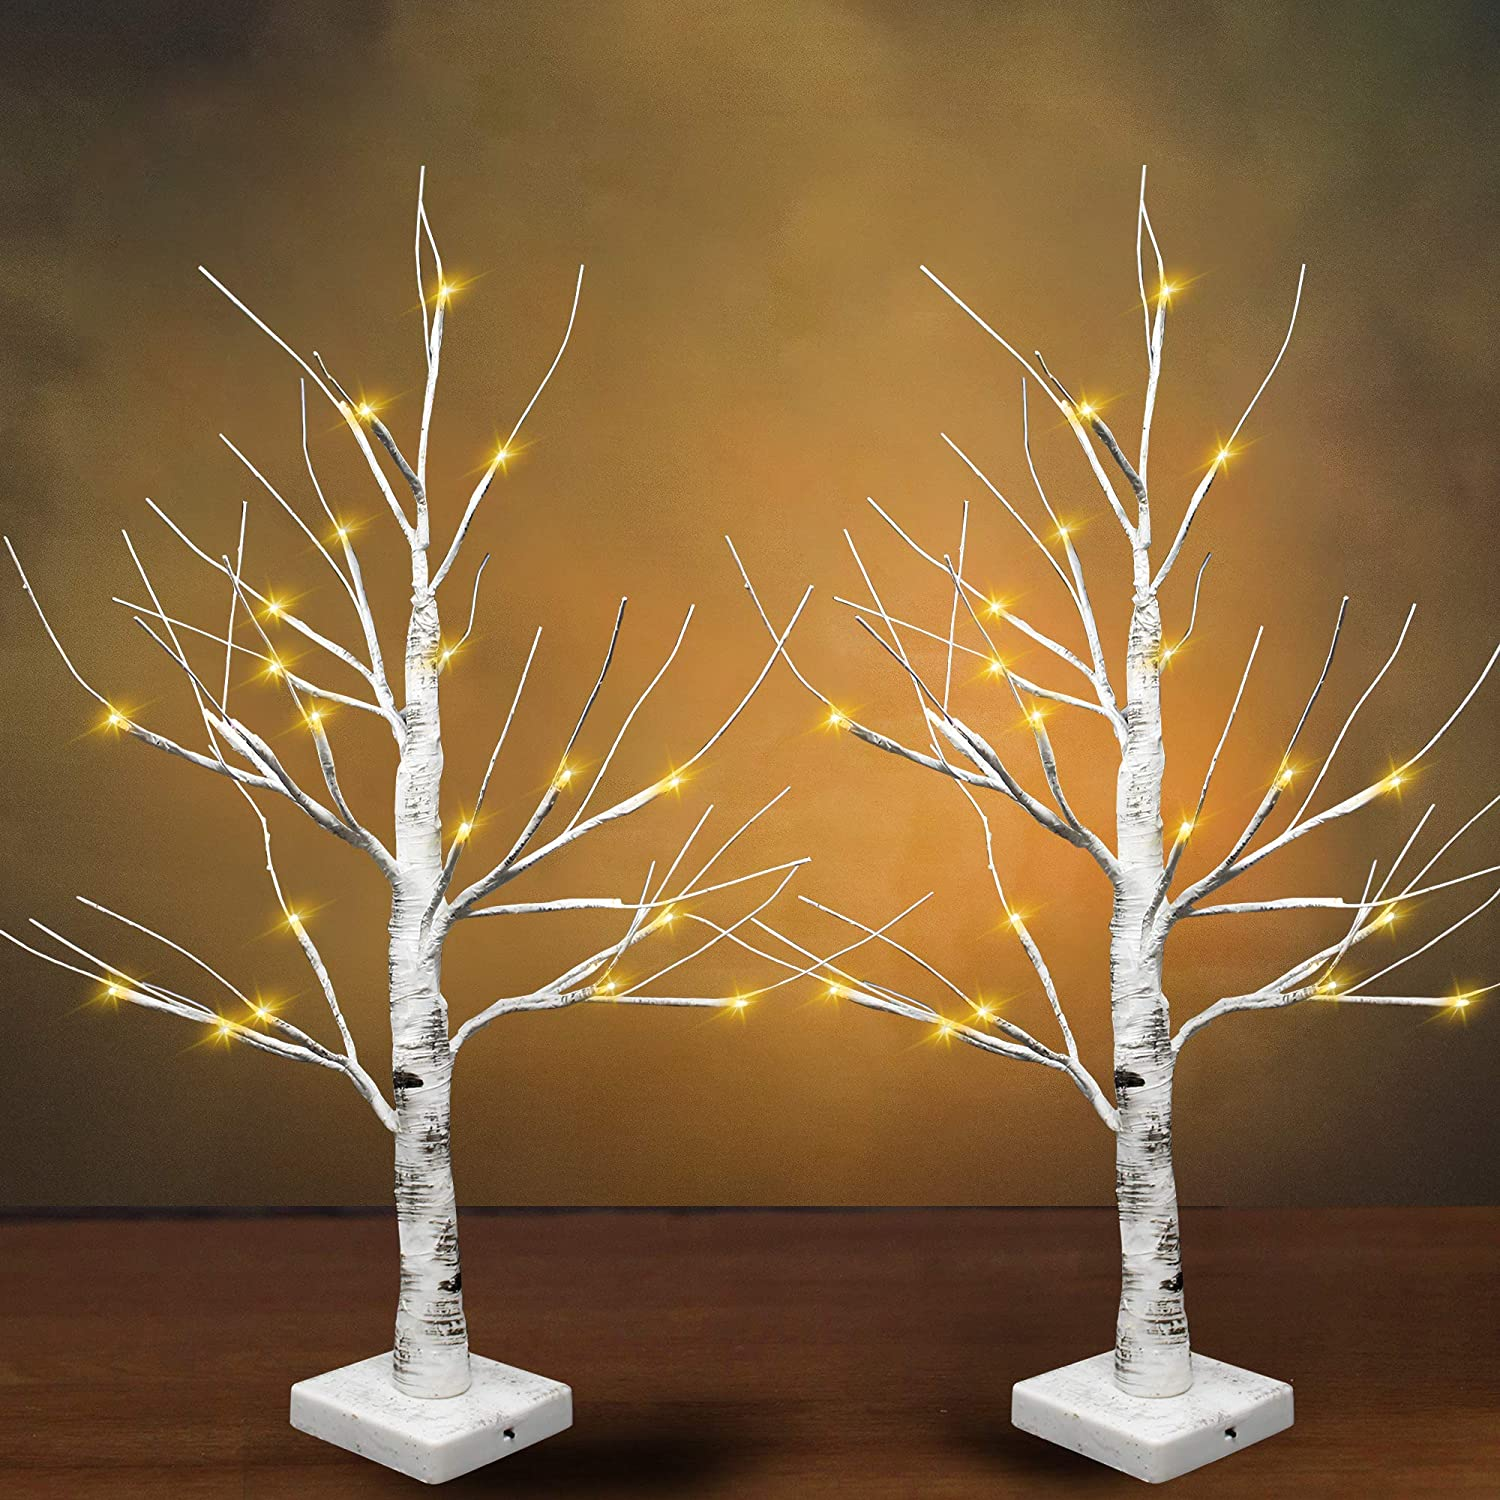 """24"""" LED Birch Tree with 24 Lights (2 Packs), Tabletop Lighted Bonsai Birch Tree Battery Powered Thanksgiving Table Decoration Light for Indoor Christmas Party Home and Bedroom Fall décor"""